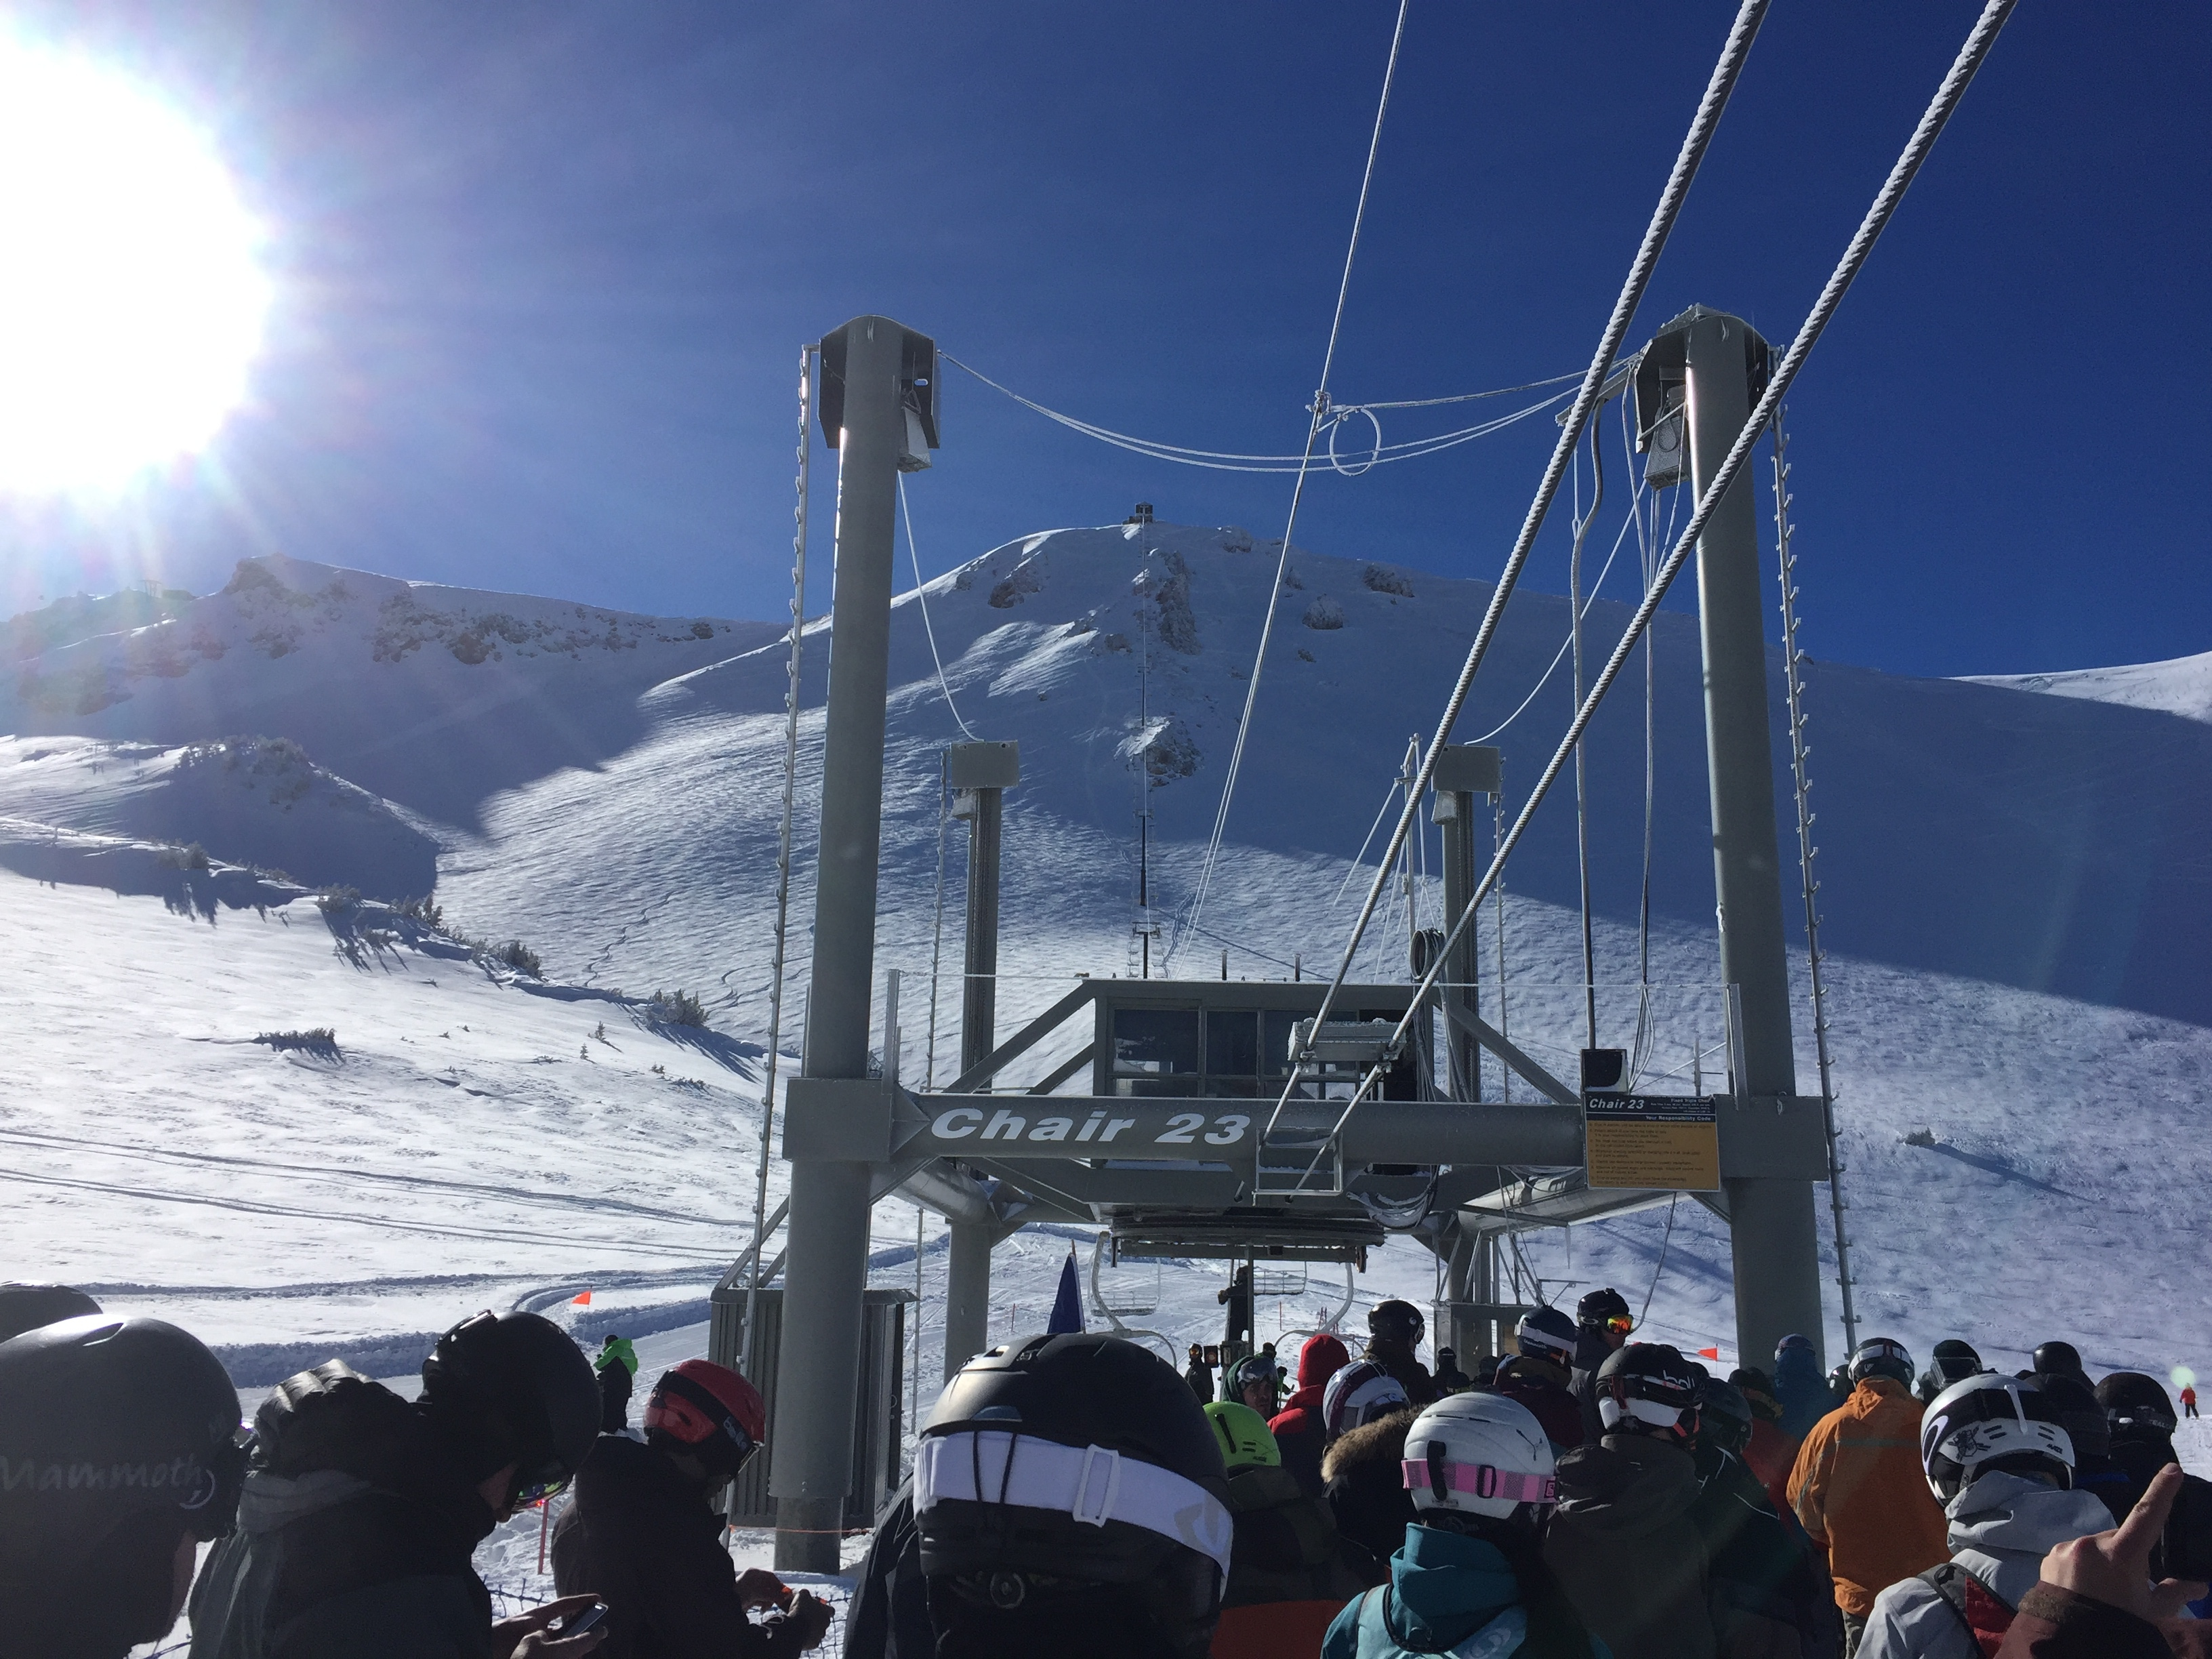 Mammoth mountain ca conditions report storm total 30 for Chair 23 mammoth